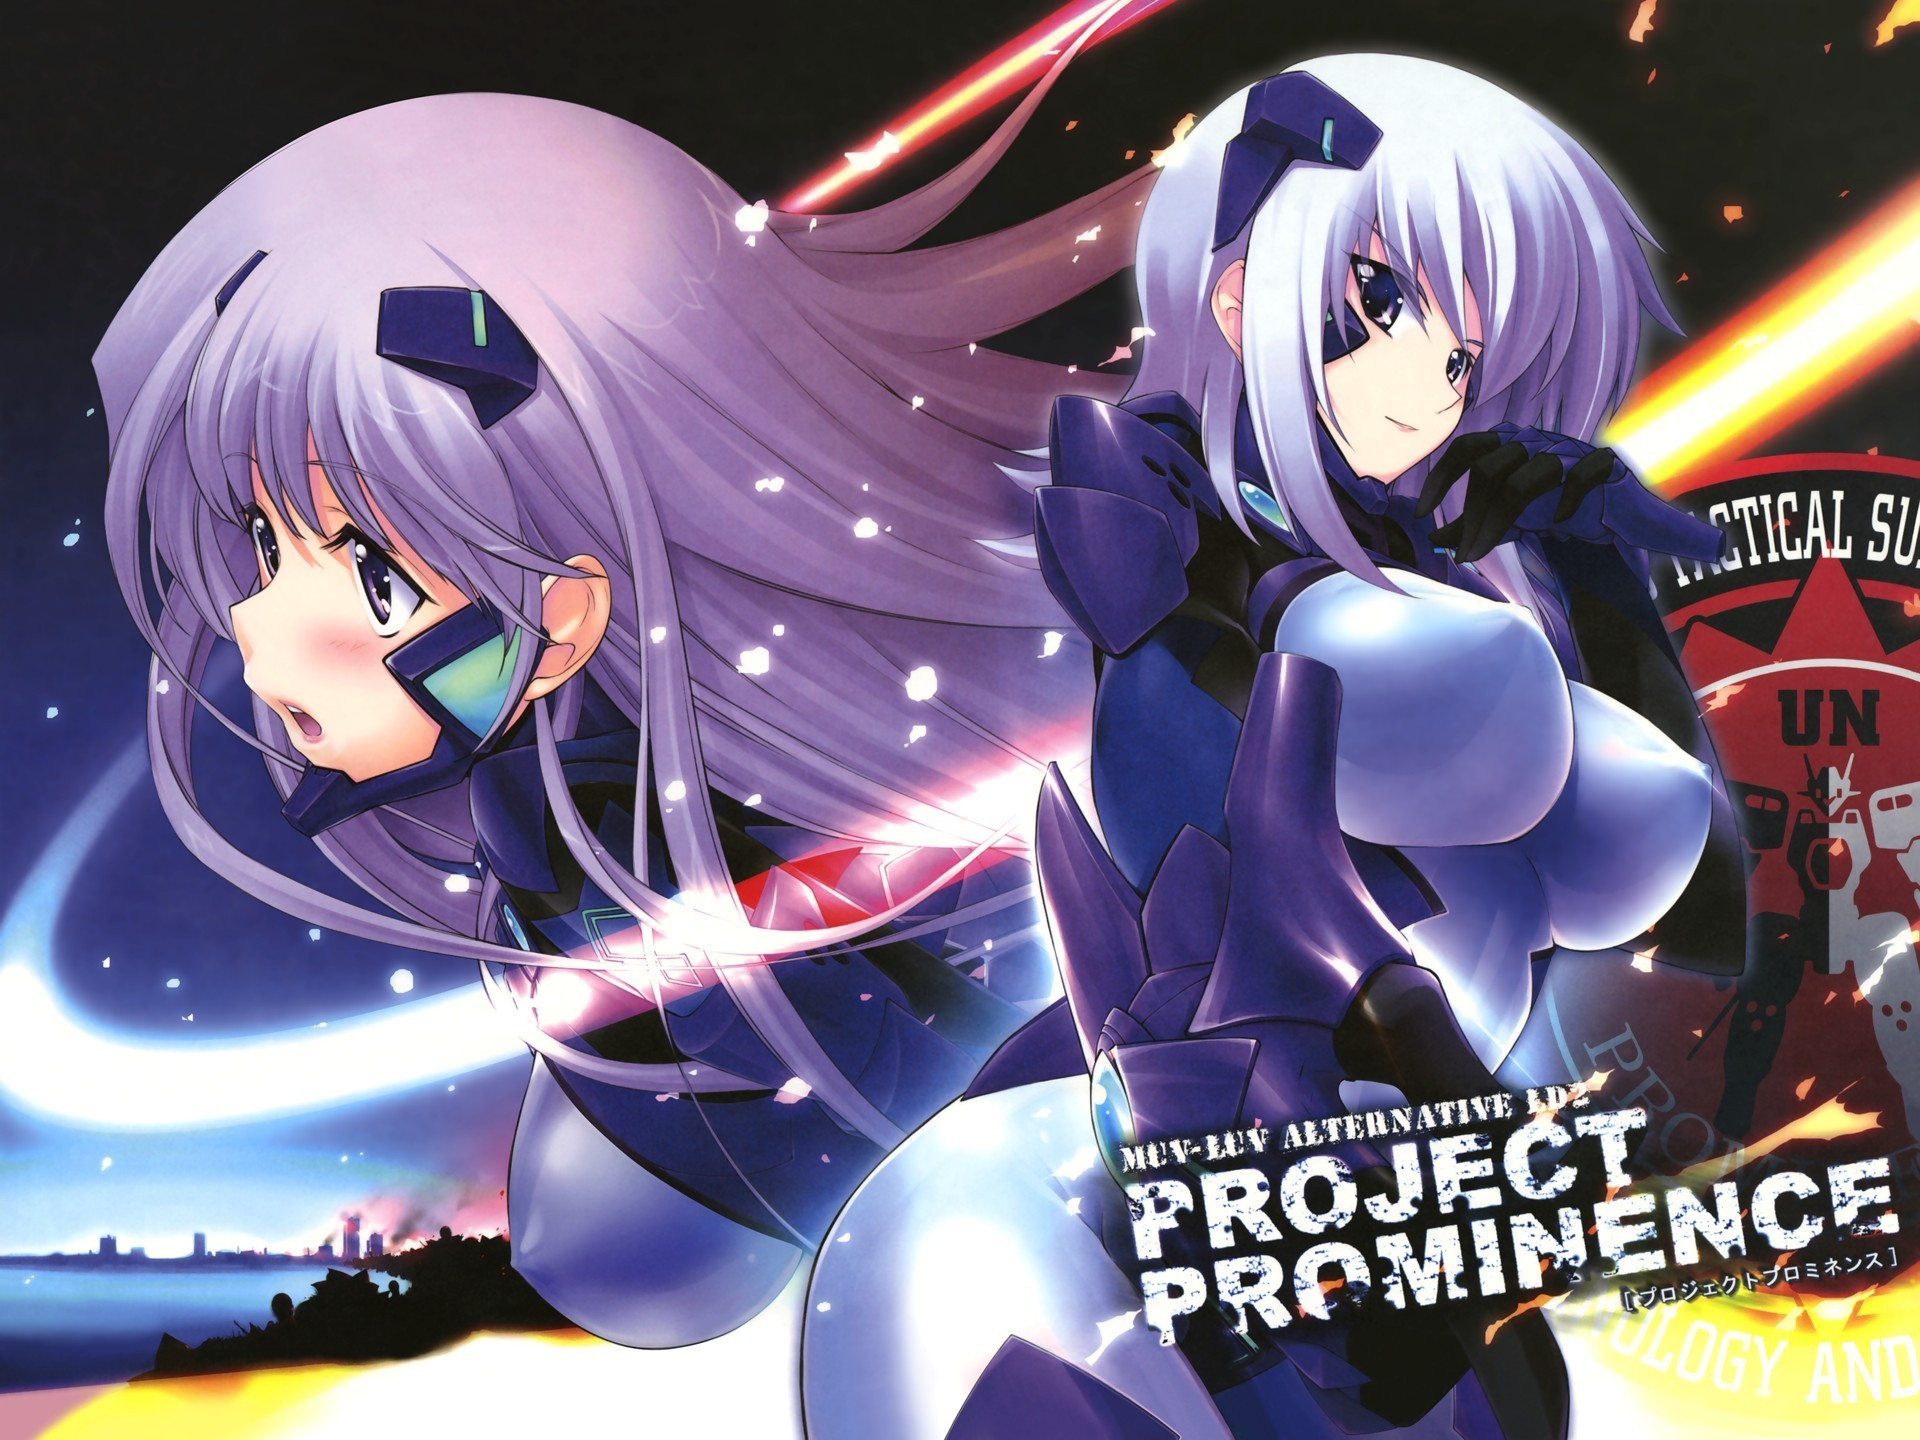 bodysuits white hair muv-luv HD Wallpaper